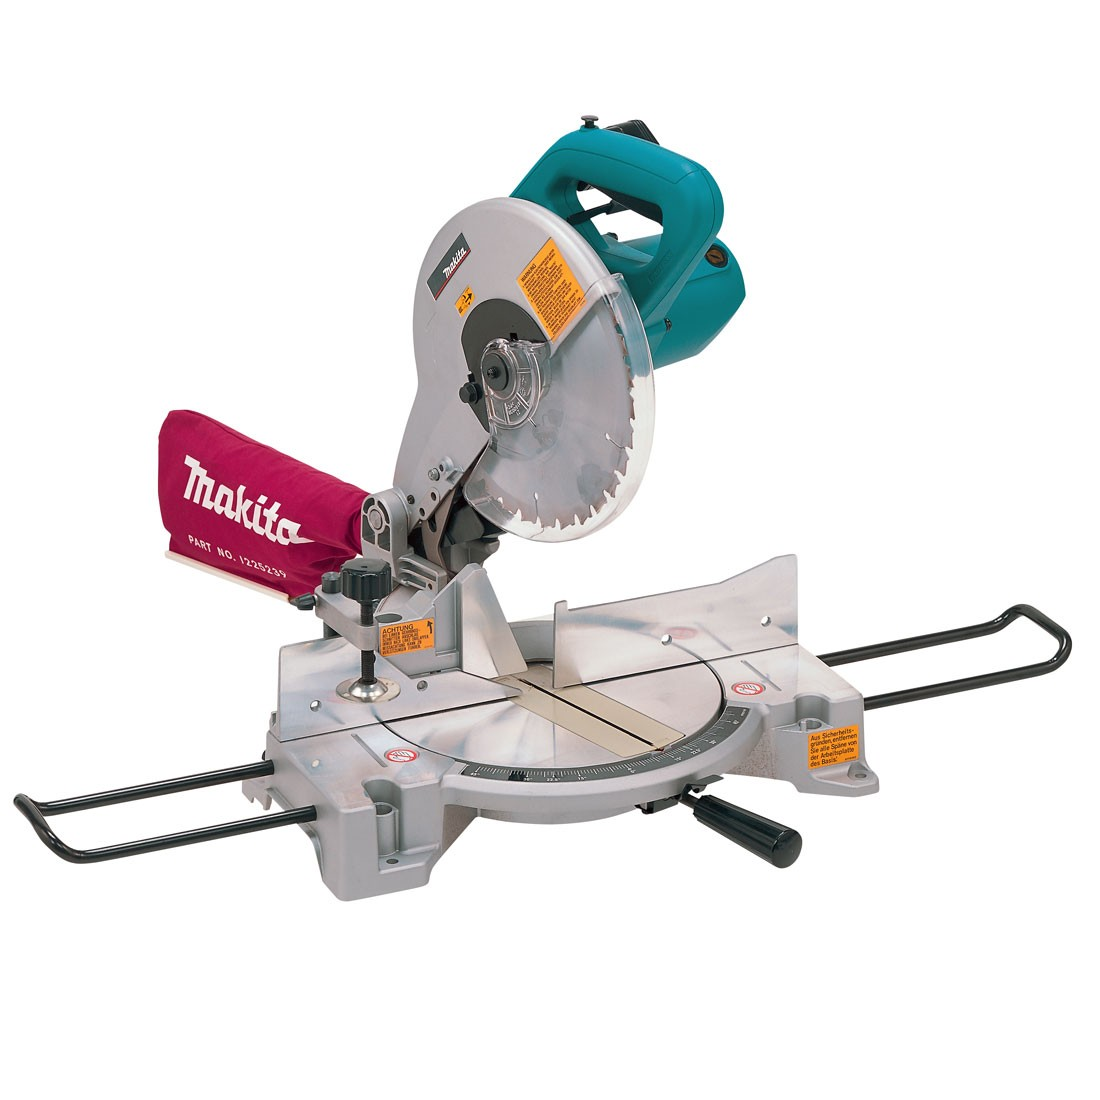 "Makita LS1040 260mm 10"" Compound Mitre Saw"